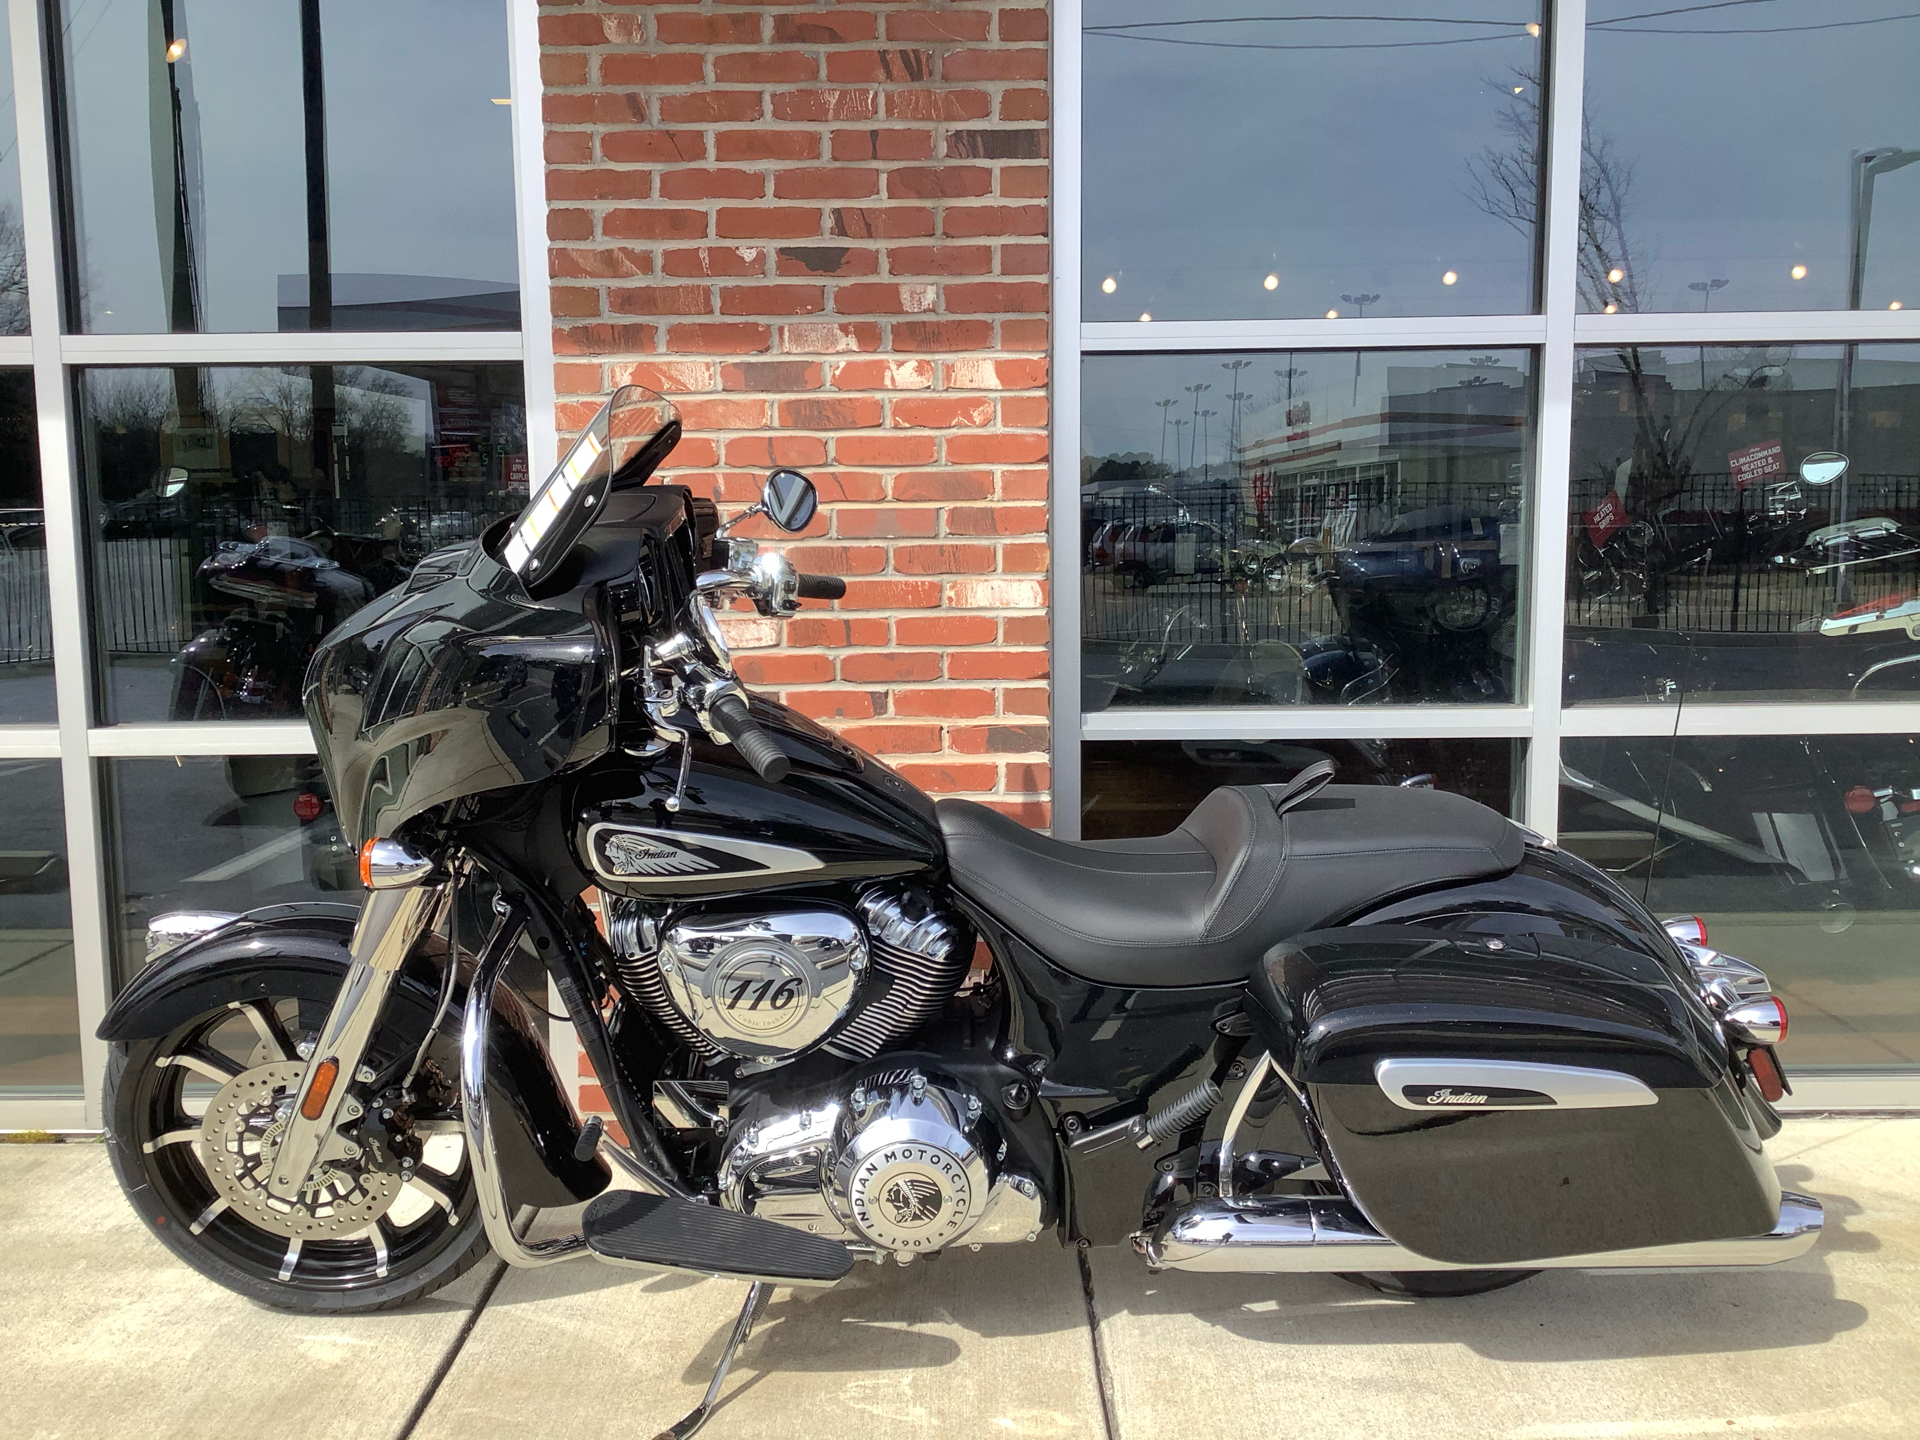 2021 Indian Chieftain® Limited in Newport News, Virginia - Photo 2